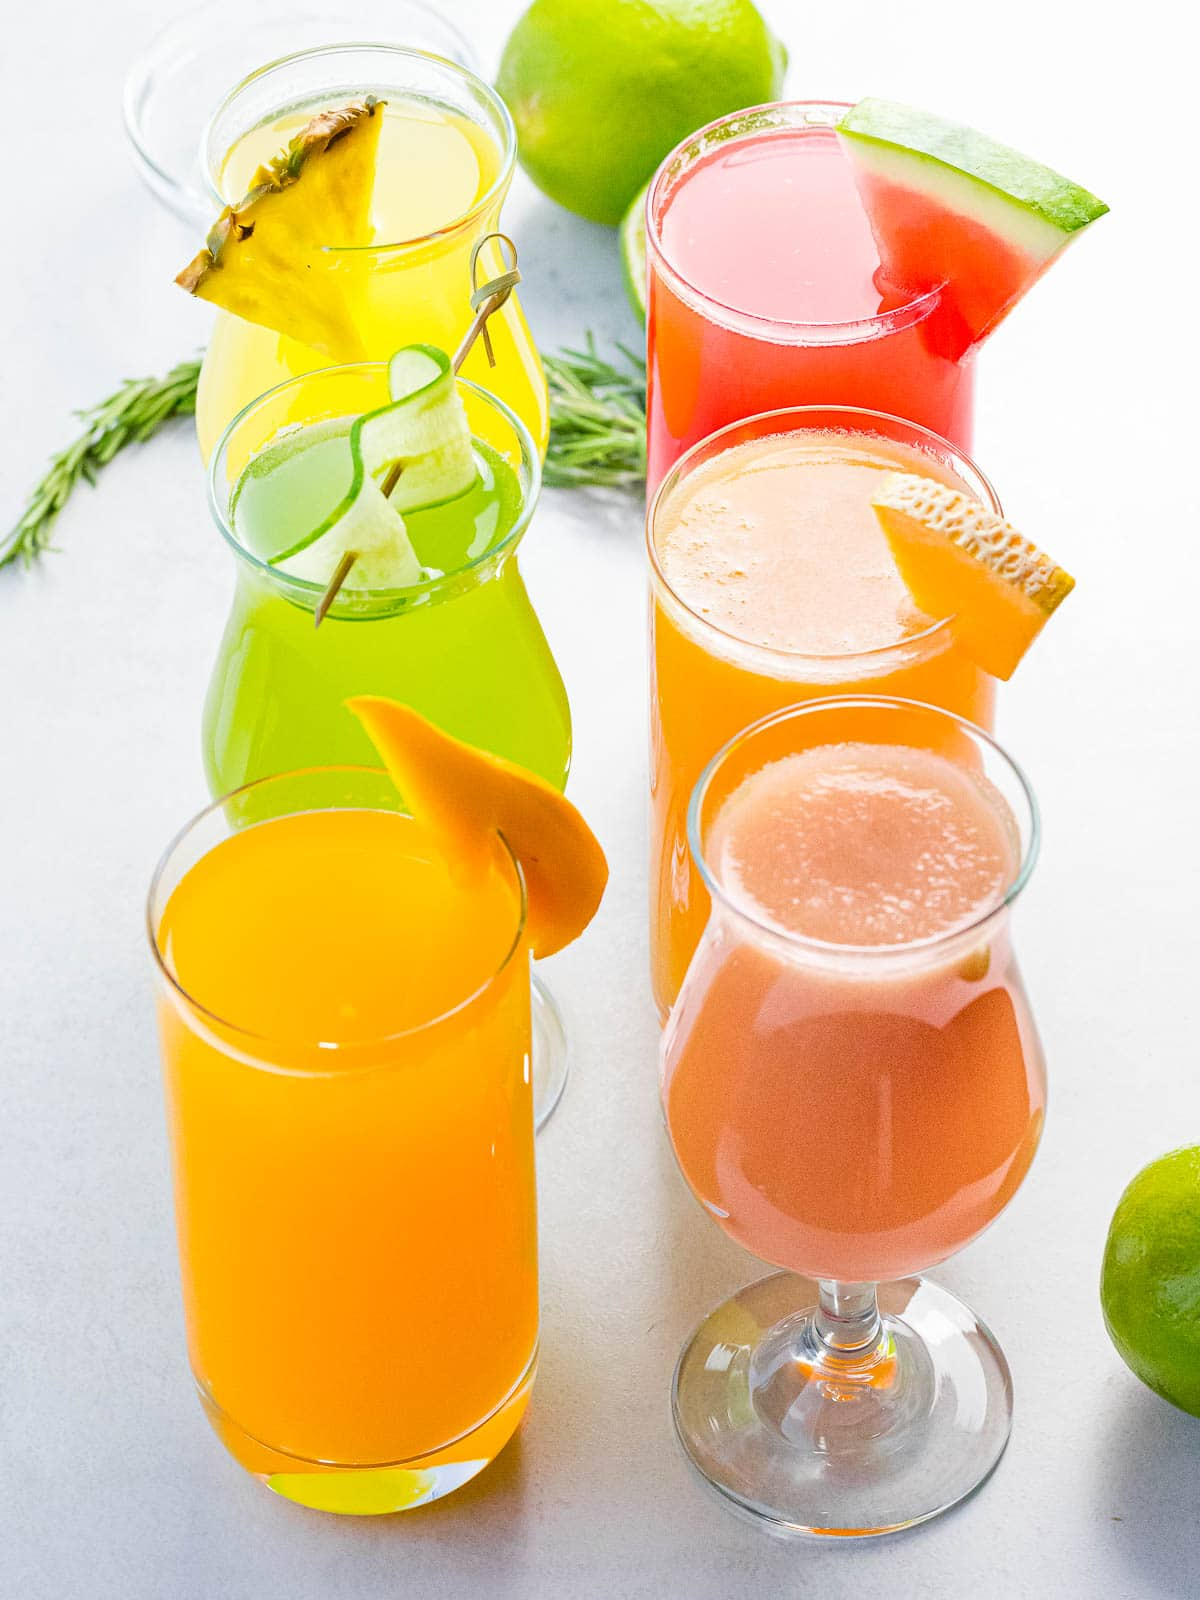 different kinds of fruit flavors of aguas frescas in glasses, including watermelon, cucumber, pineapple, and mango